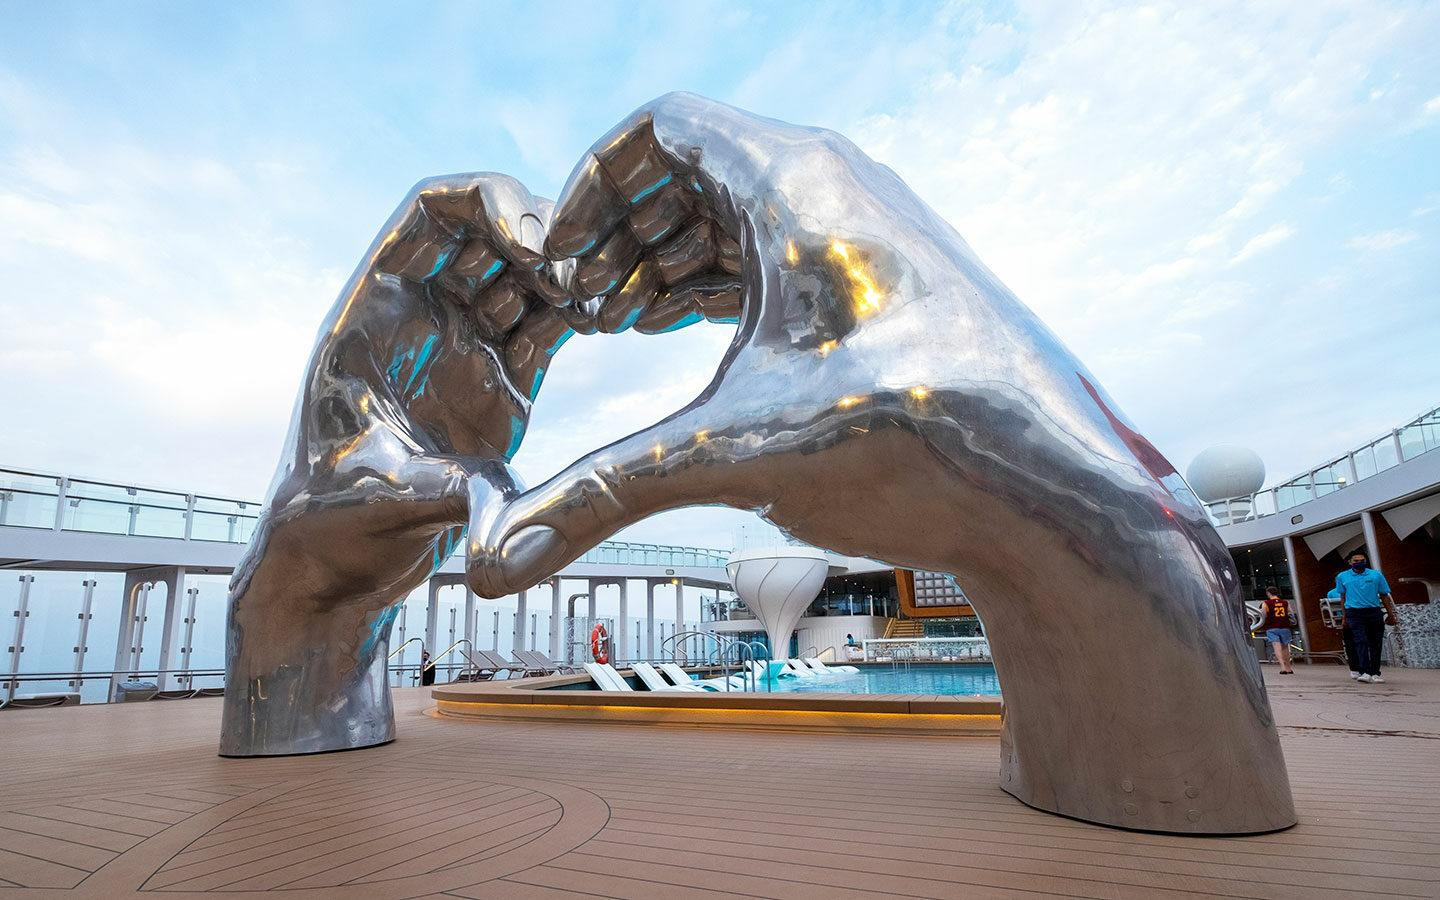 Heart sculpture by the pool on Celebrity Apex